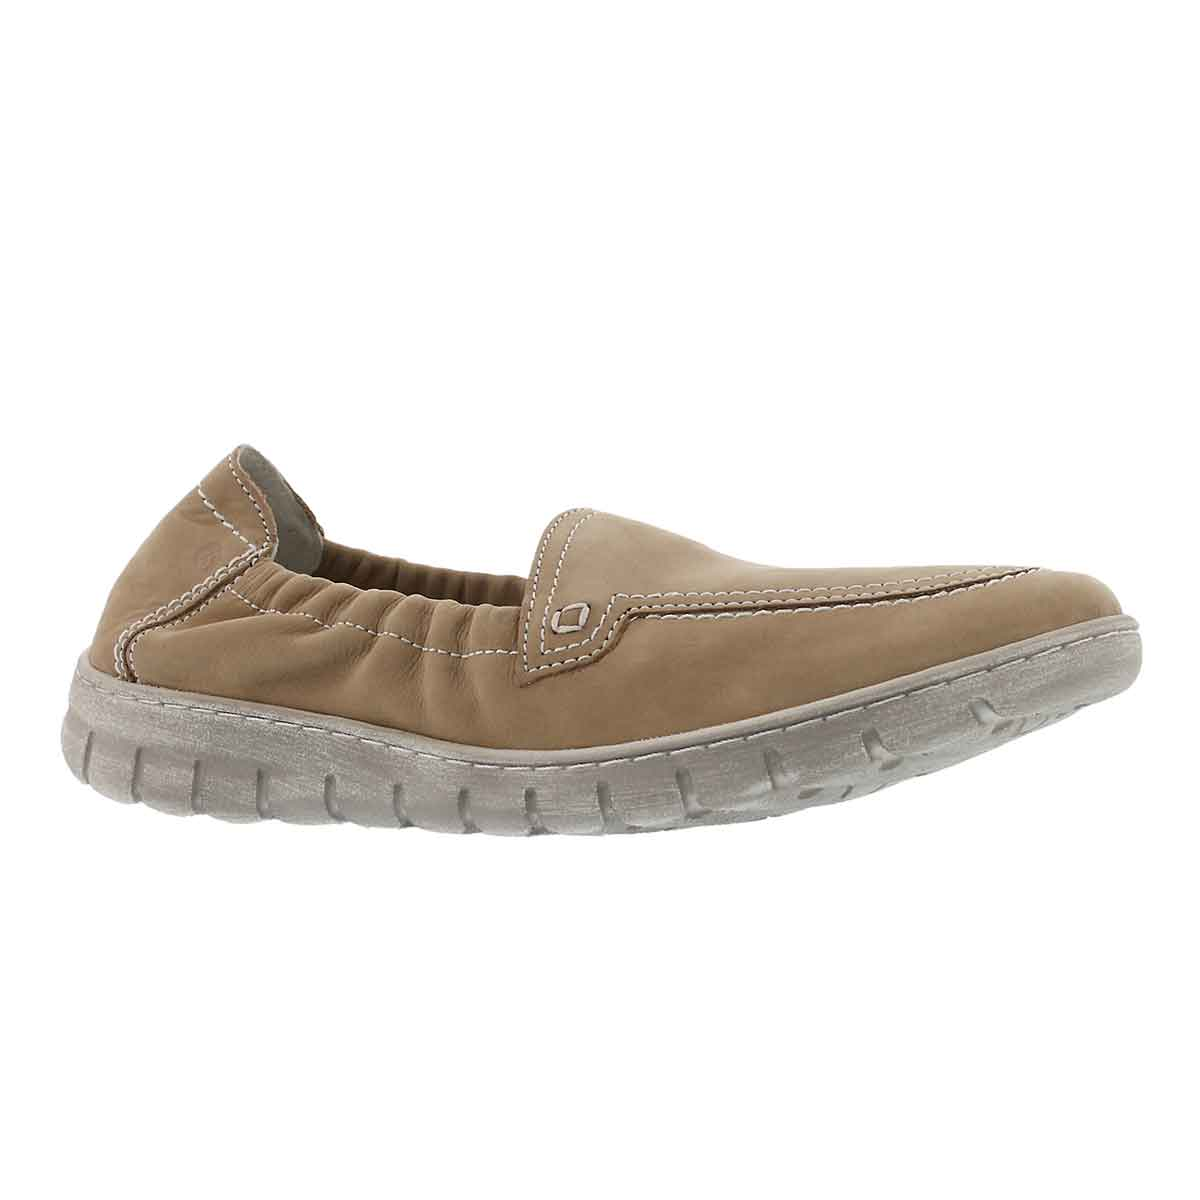 Lds Steffi 57 beige slip on shoe